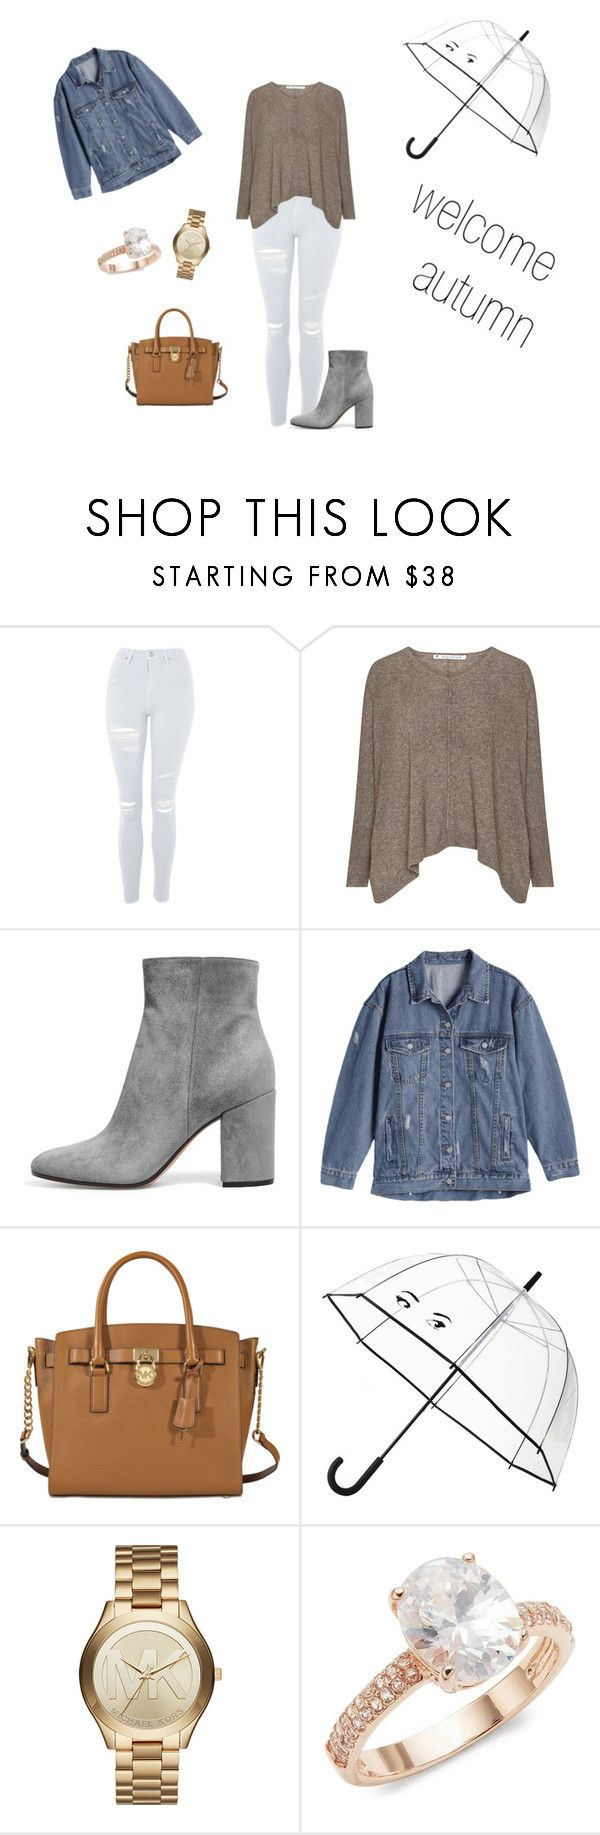 """Untitled #288"" by natalyholly on Polyvore featuring Topshop, MICHAEL Michael Kors, Kate Spade, Michael Kors and Saks Fifth Avenue"